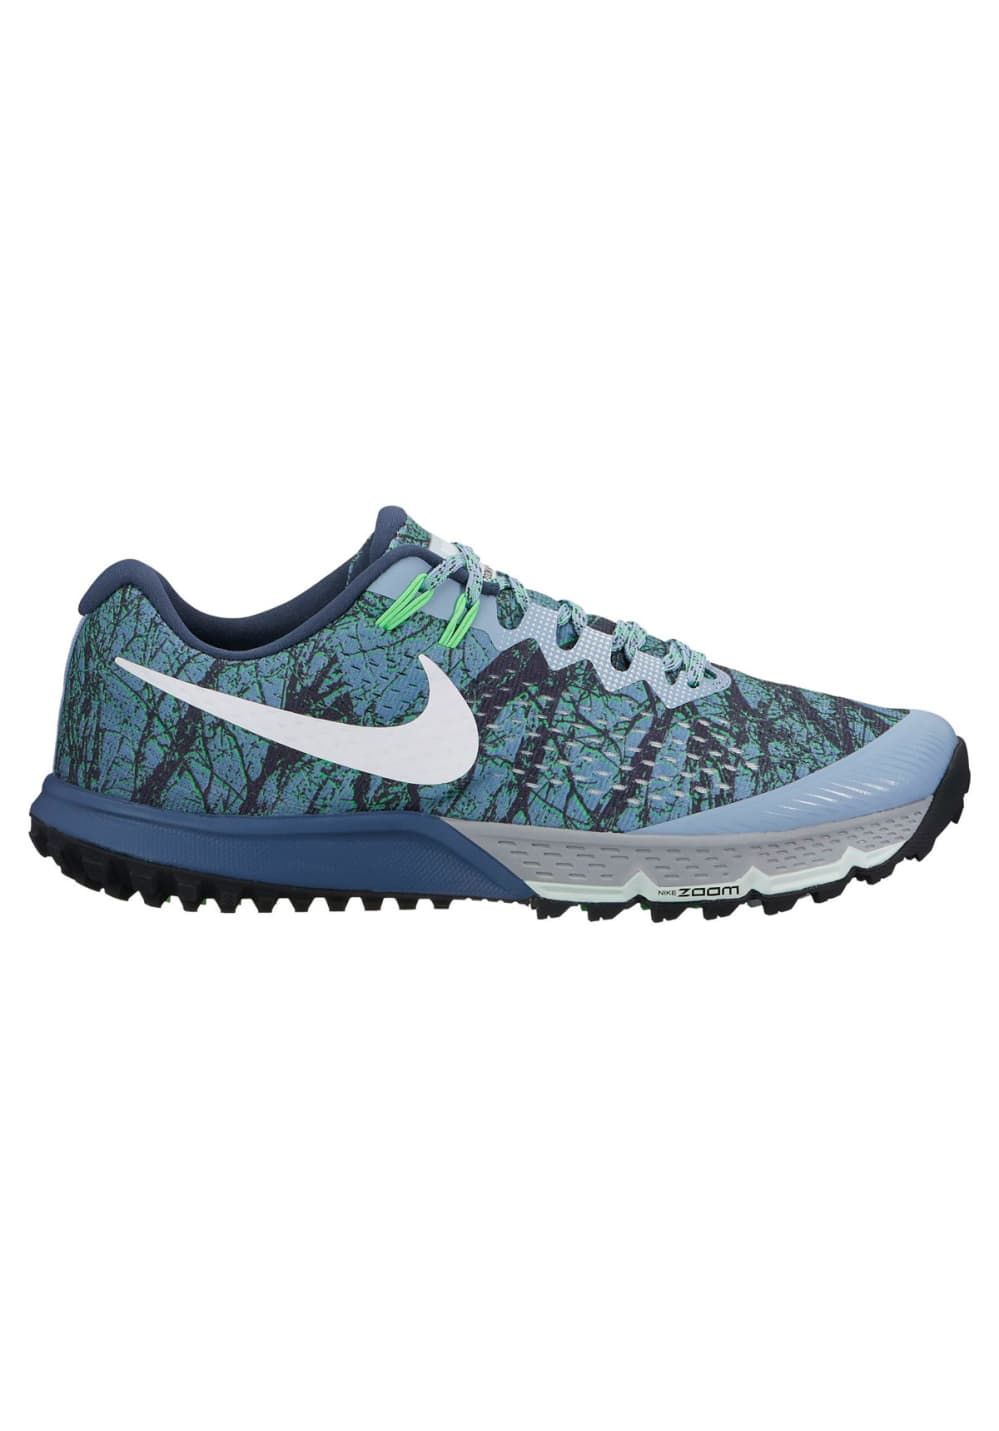 218057f0 ... Nike Air Zoom Terra Kiger 4 - Running shoes for Men - Blue. Back to  Overview. 1; 2. Previous